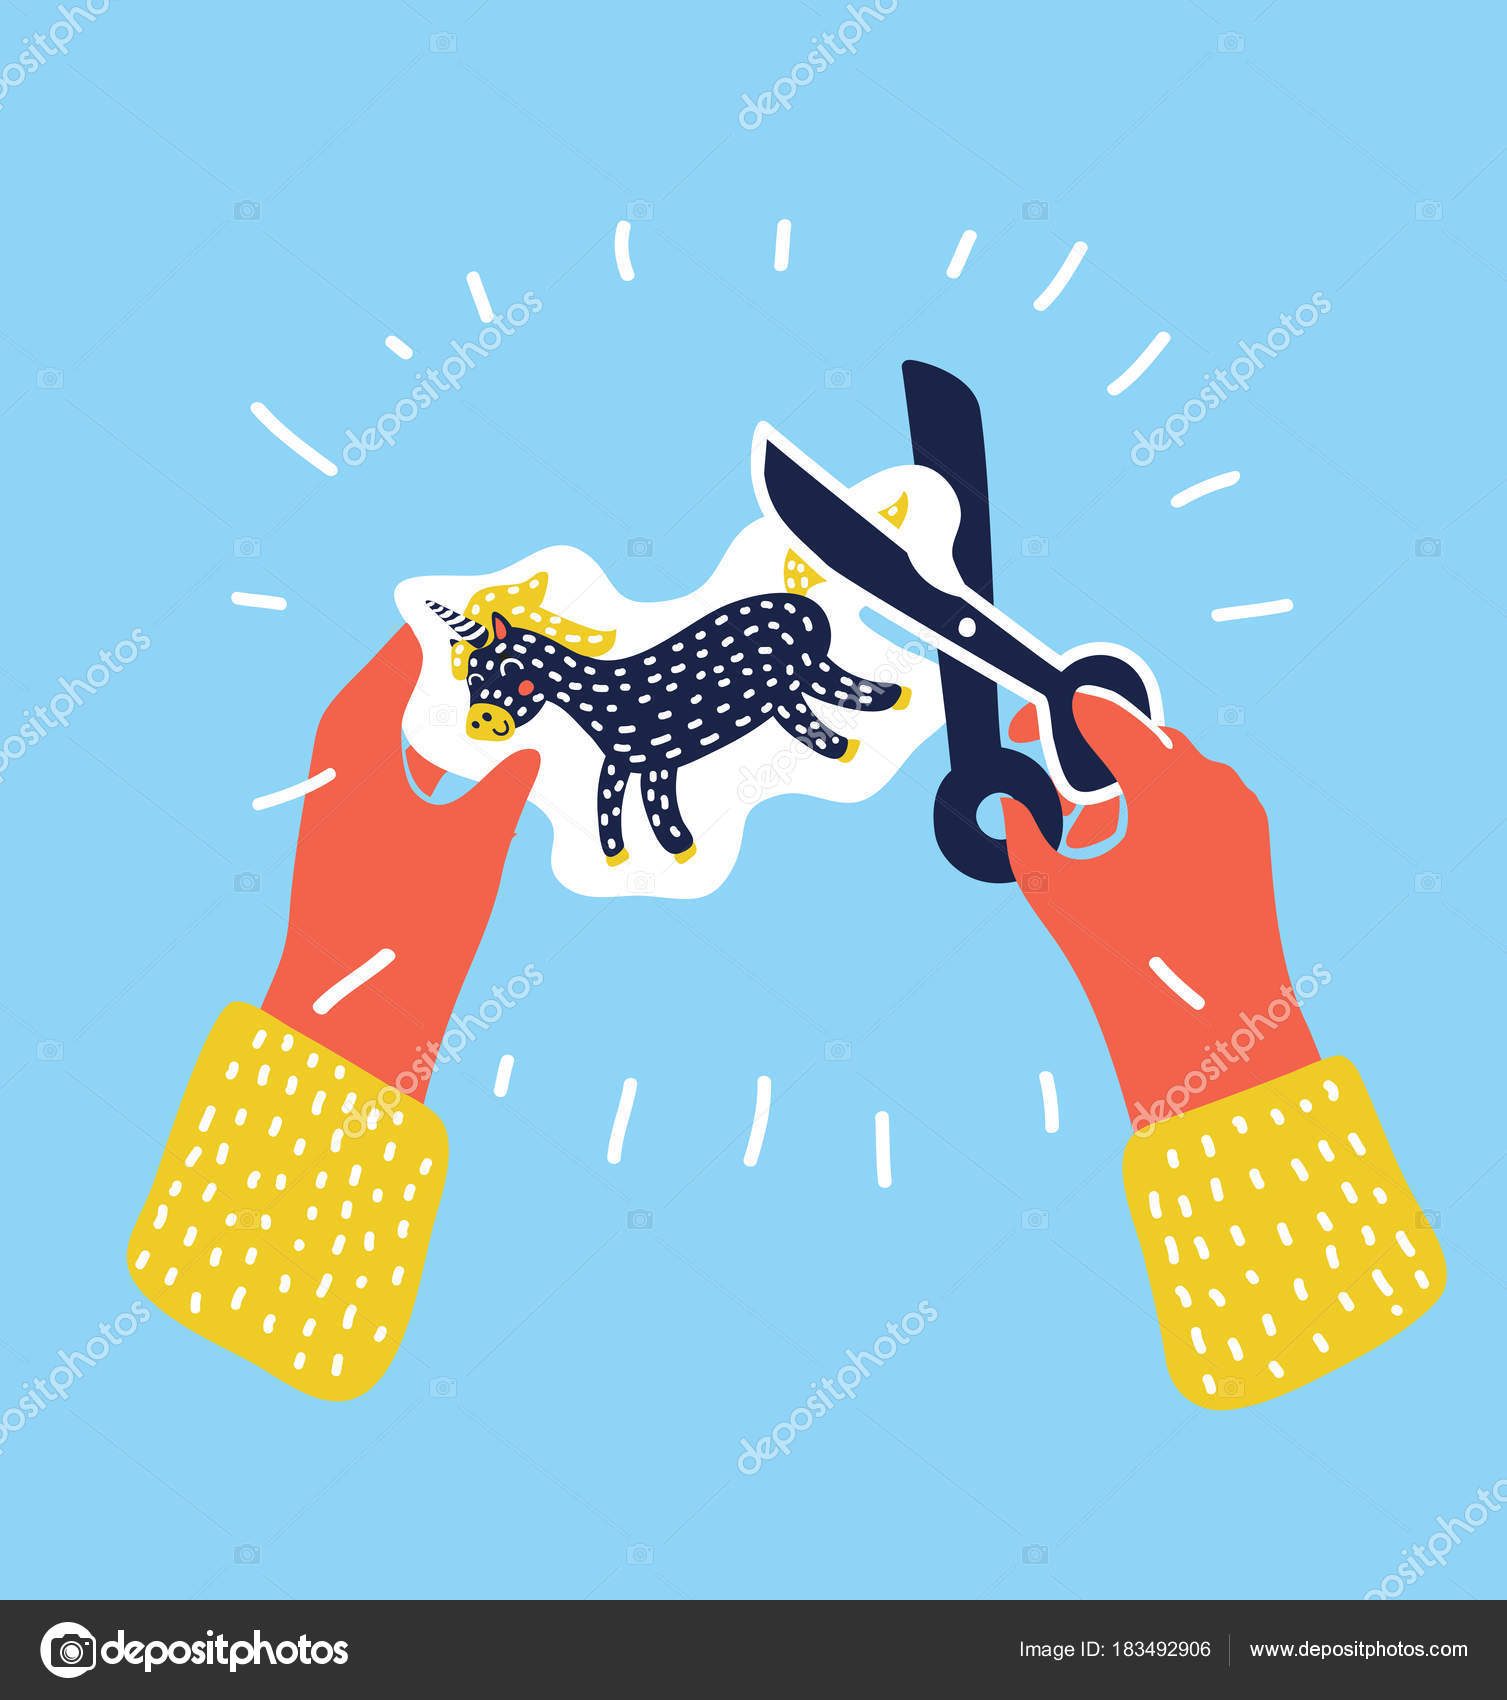 two hands cutting paper with scissors for applique elementary school art class vector illustration